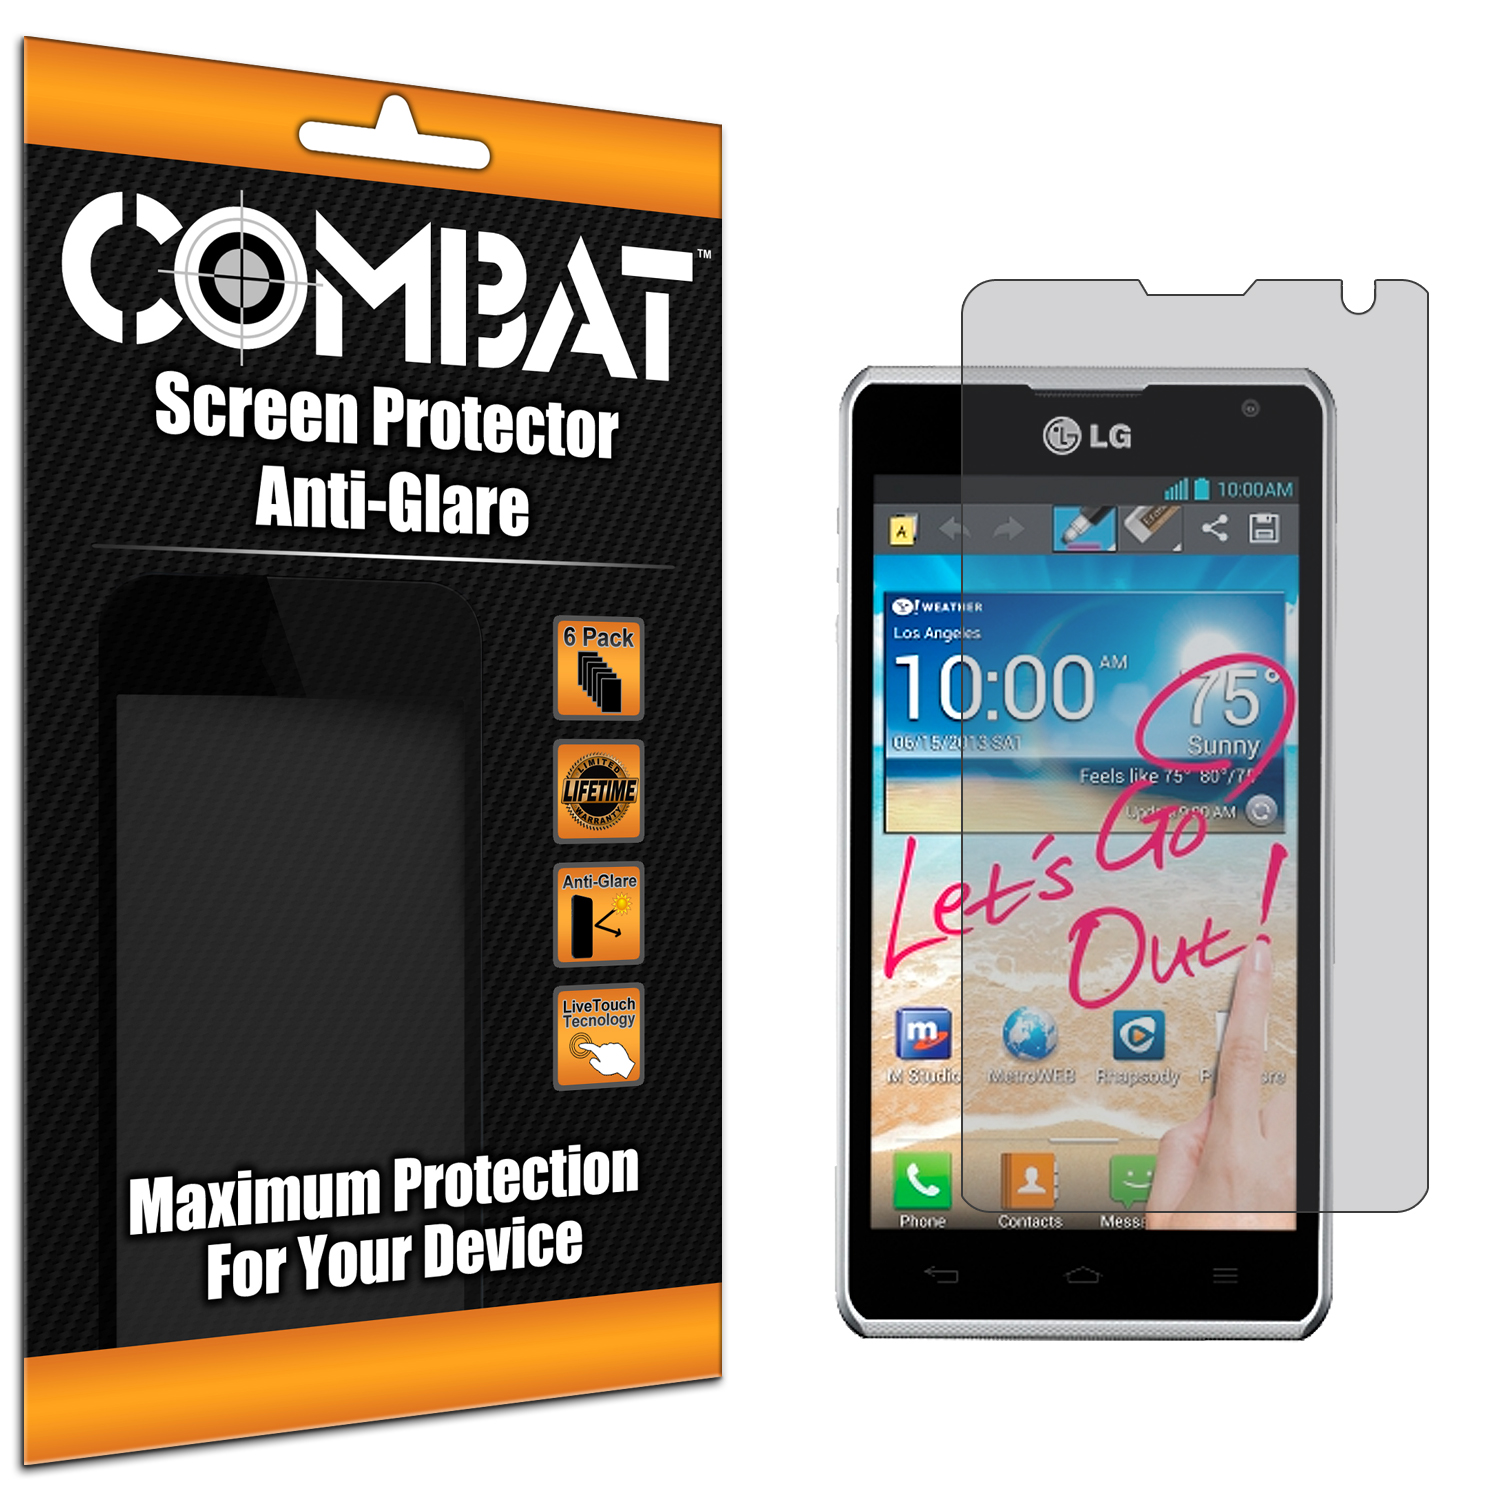 LG Spirit 4G MS870 Combat 6 Pack Anti-Glare Matte Screen Protector